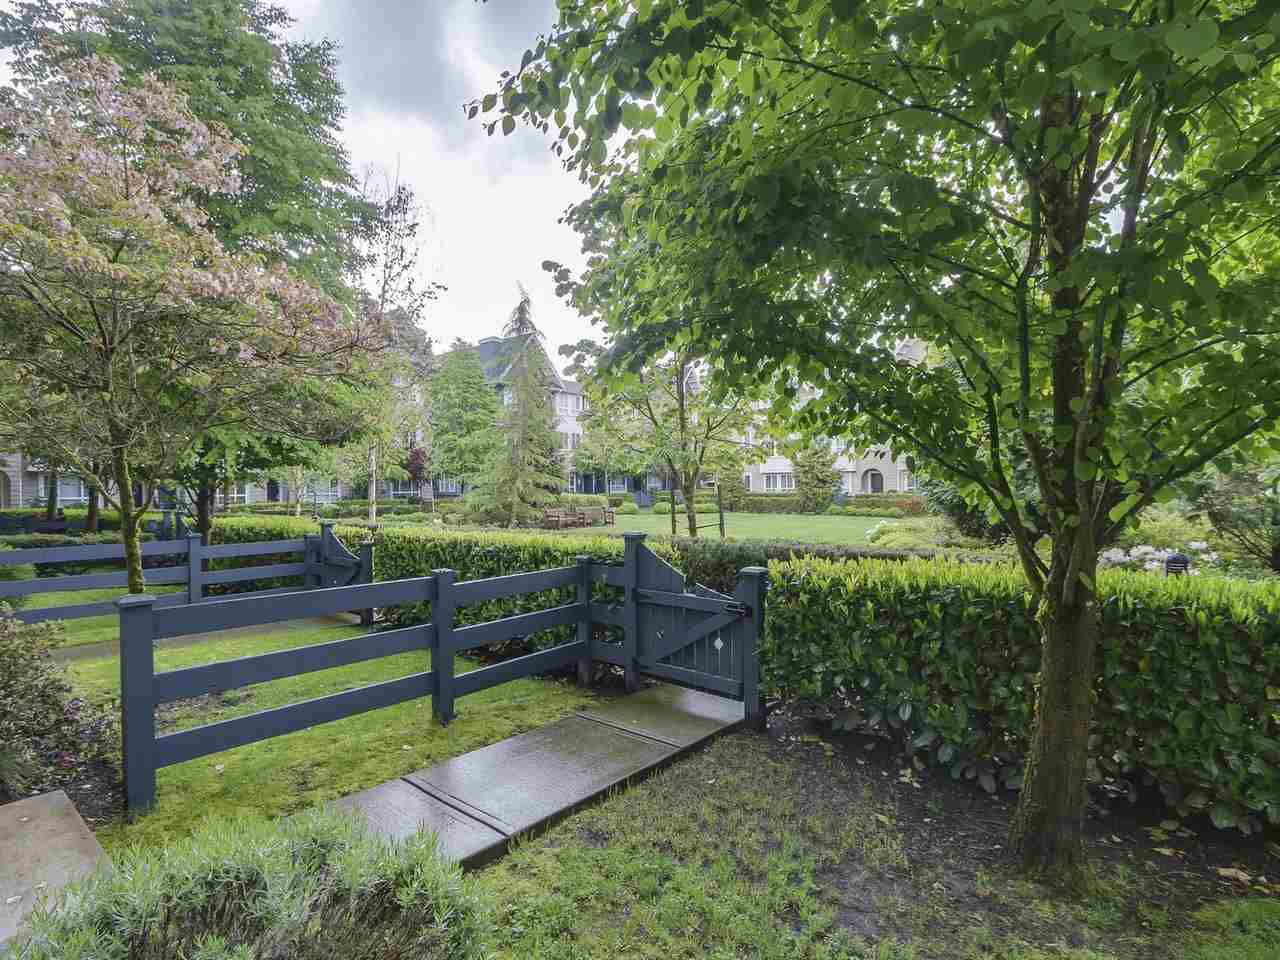 Photo 2: # 110 - 2418 Avon  Place in Port Coquitlam: Riverwood Townhouse for sale : MLS(r) # R2166312